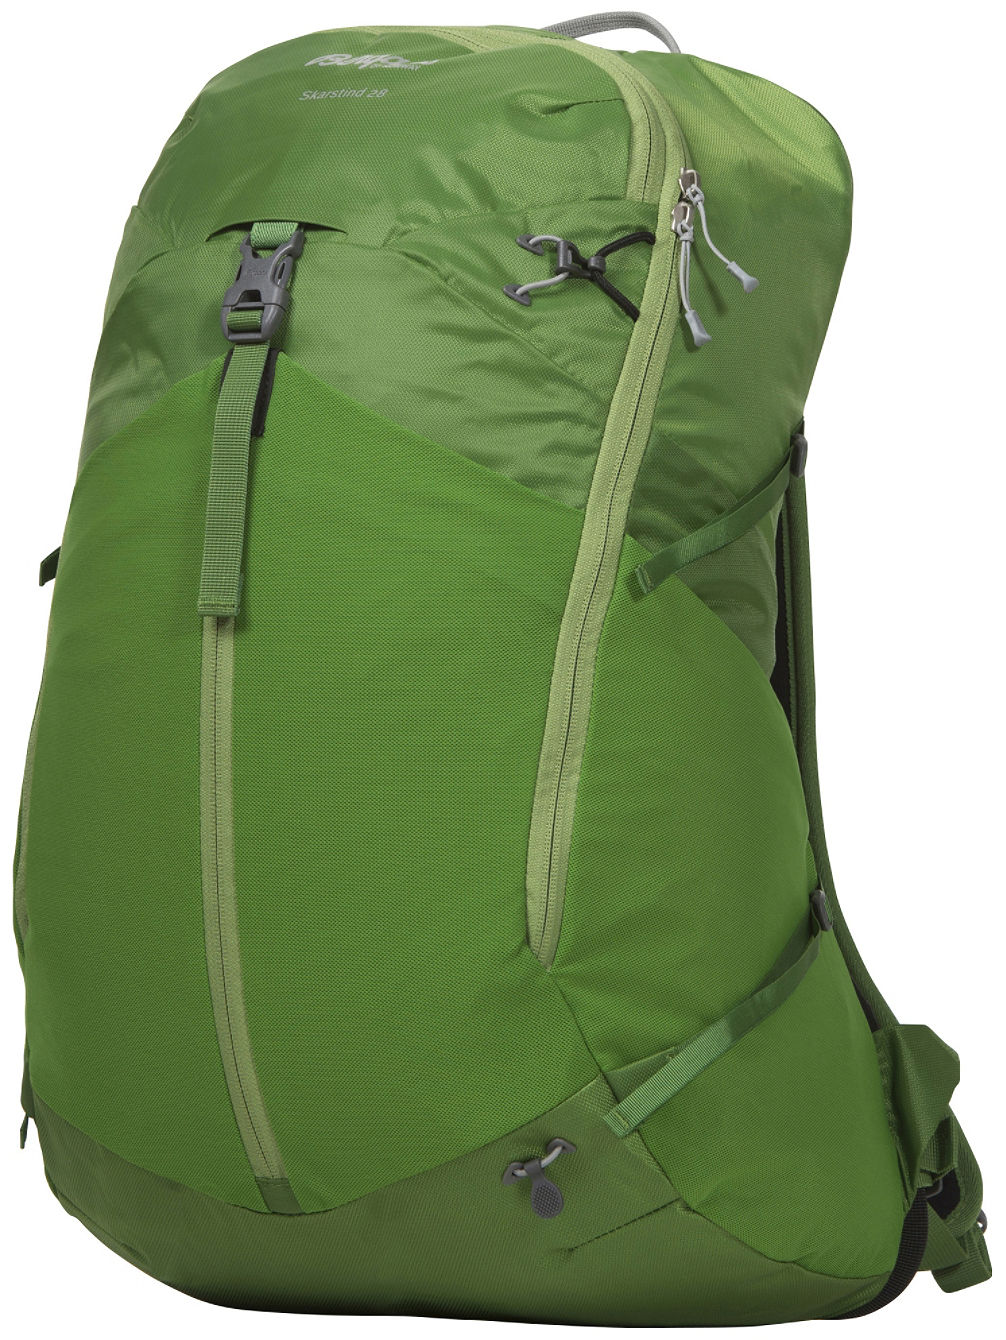 Skarstind 28 Backpack